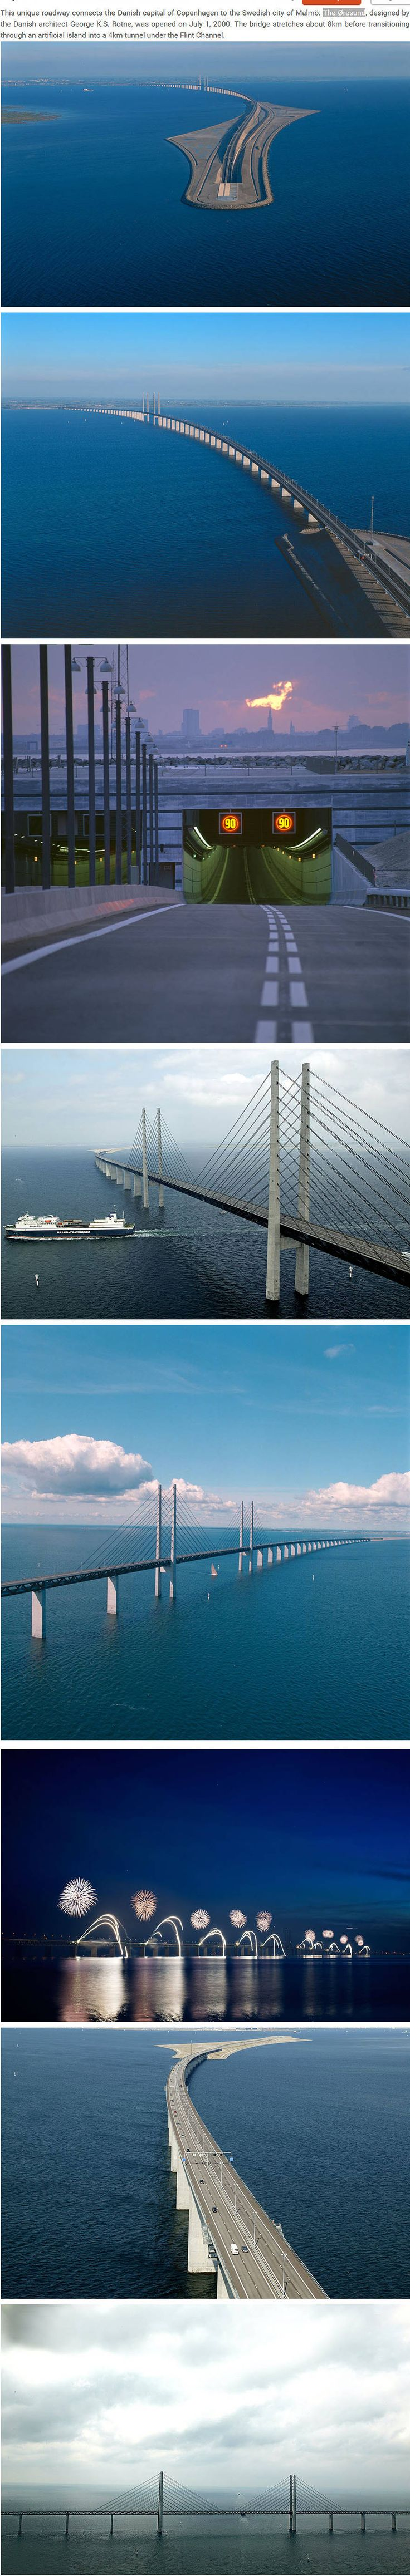 The Øresund connects Copenhagen to Malmo